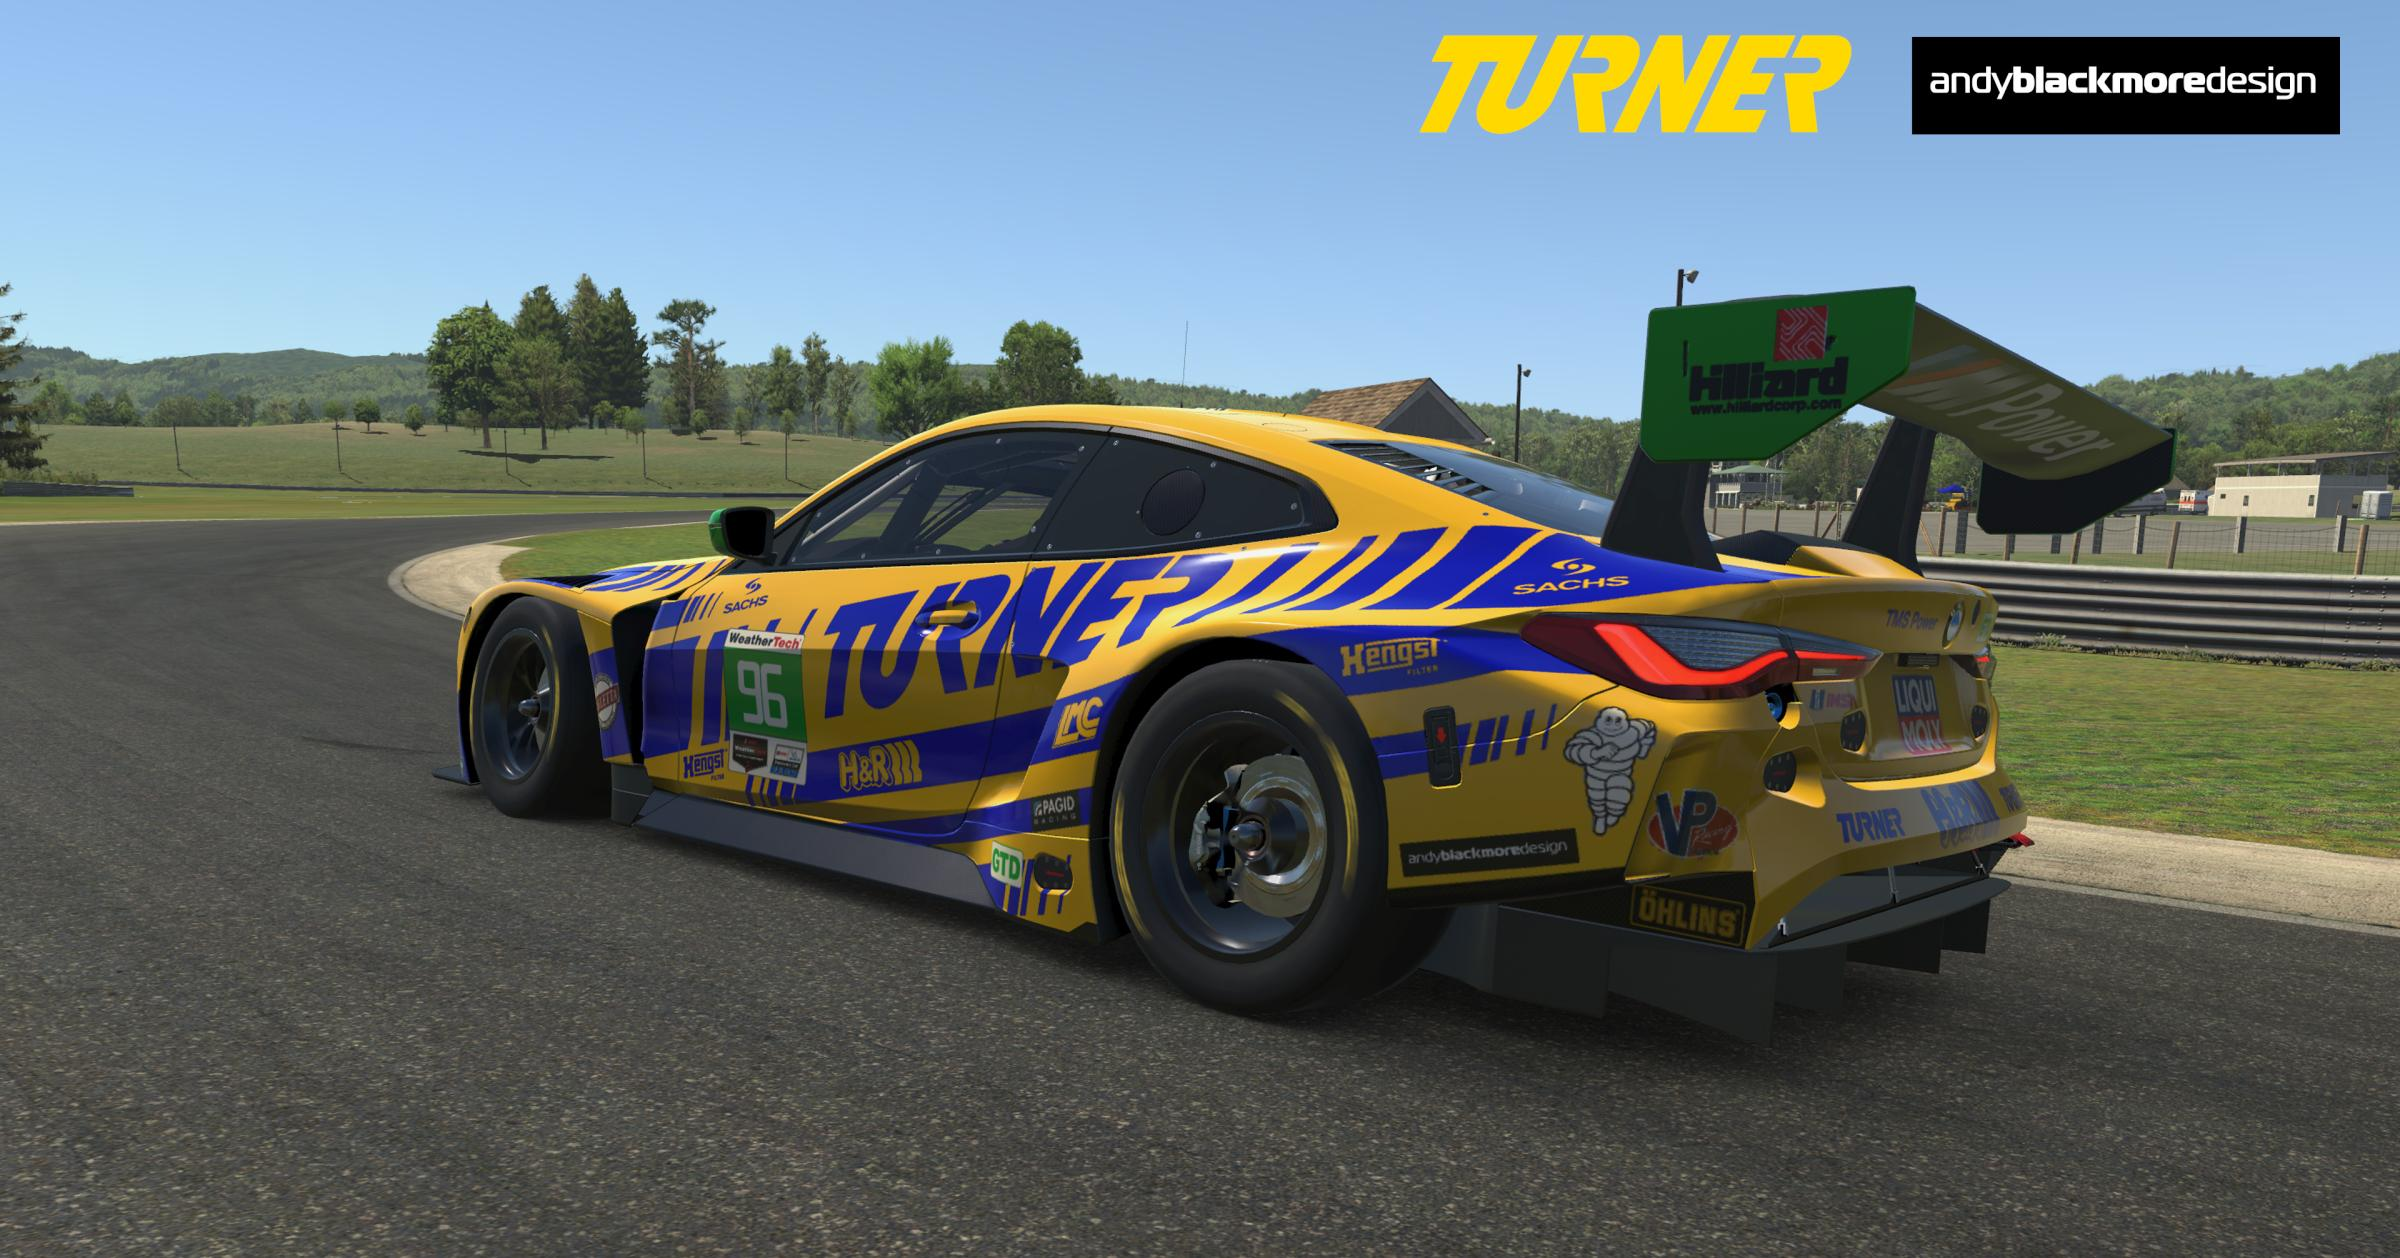 Preview of BMW M4 GT3 (Proto) - 2020 TURNER SEBRING 12HR LIVERY by Andrew Blackmore